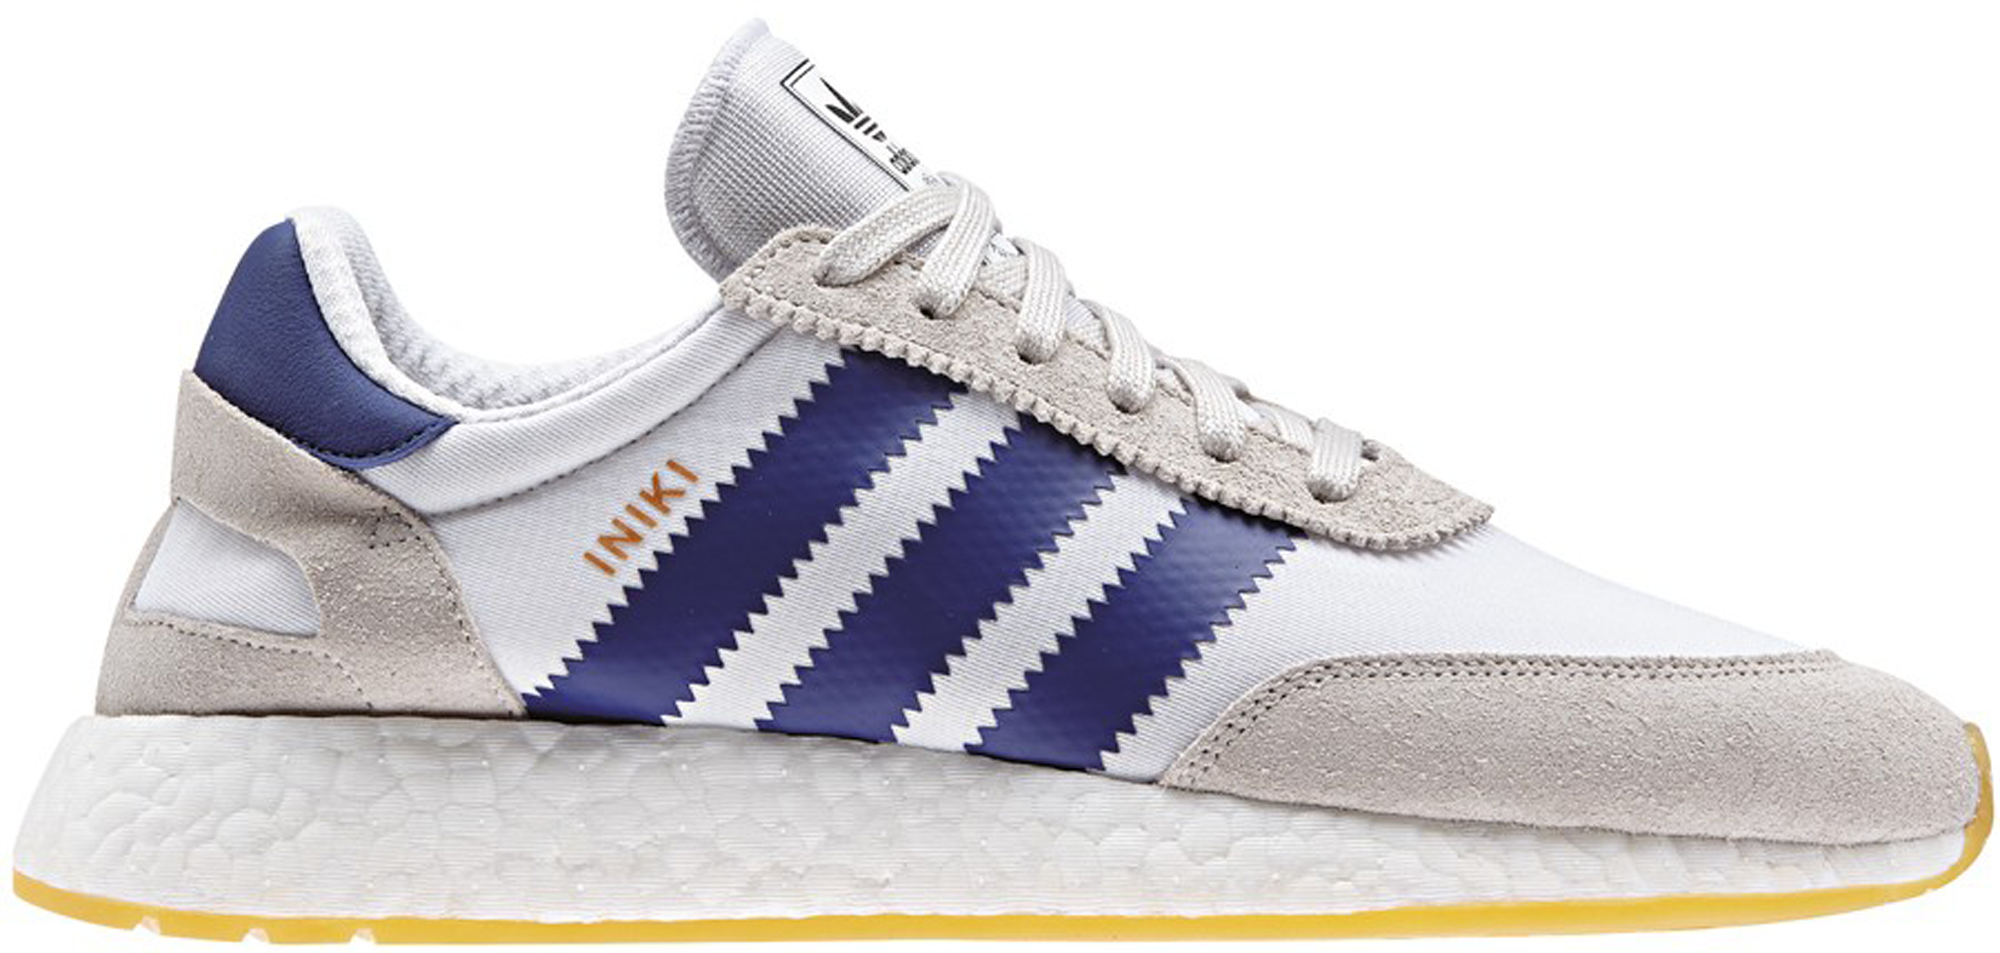 uk store where can i buy super popular adidas Iniki Runner White Navy Gum - StockX News